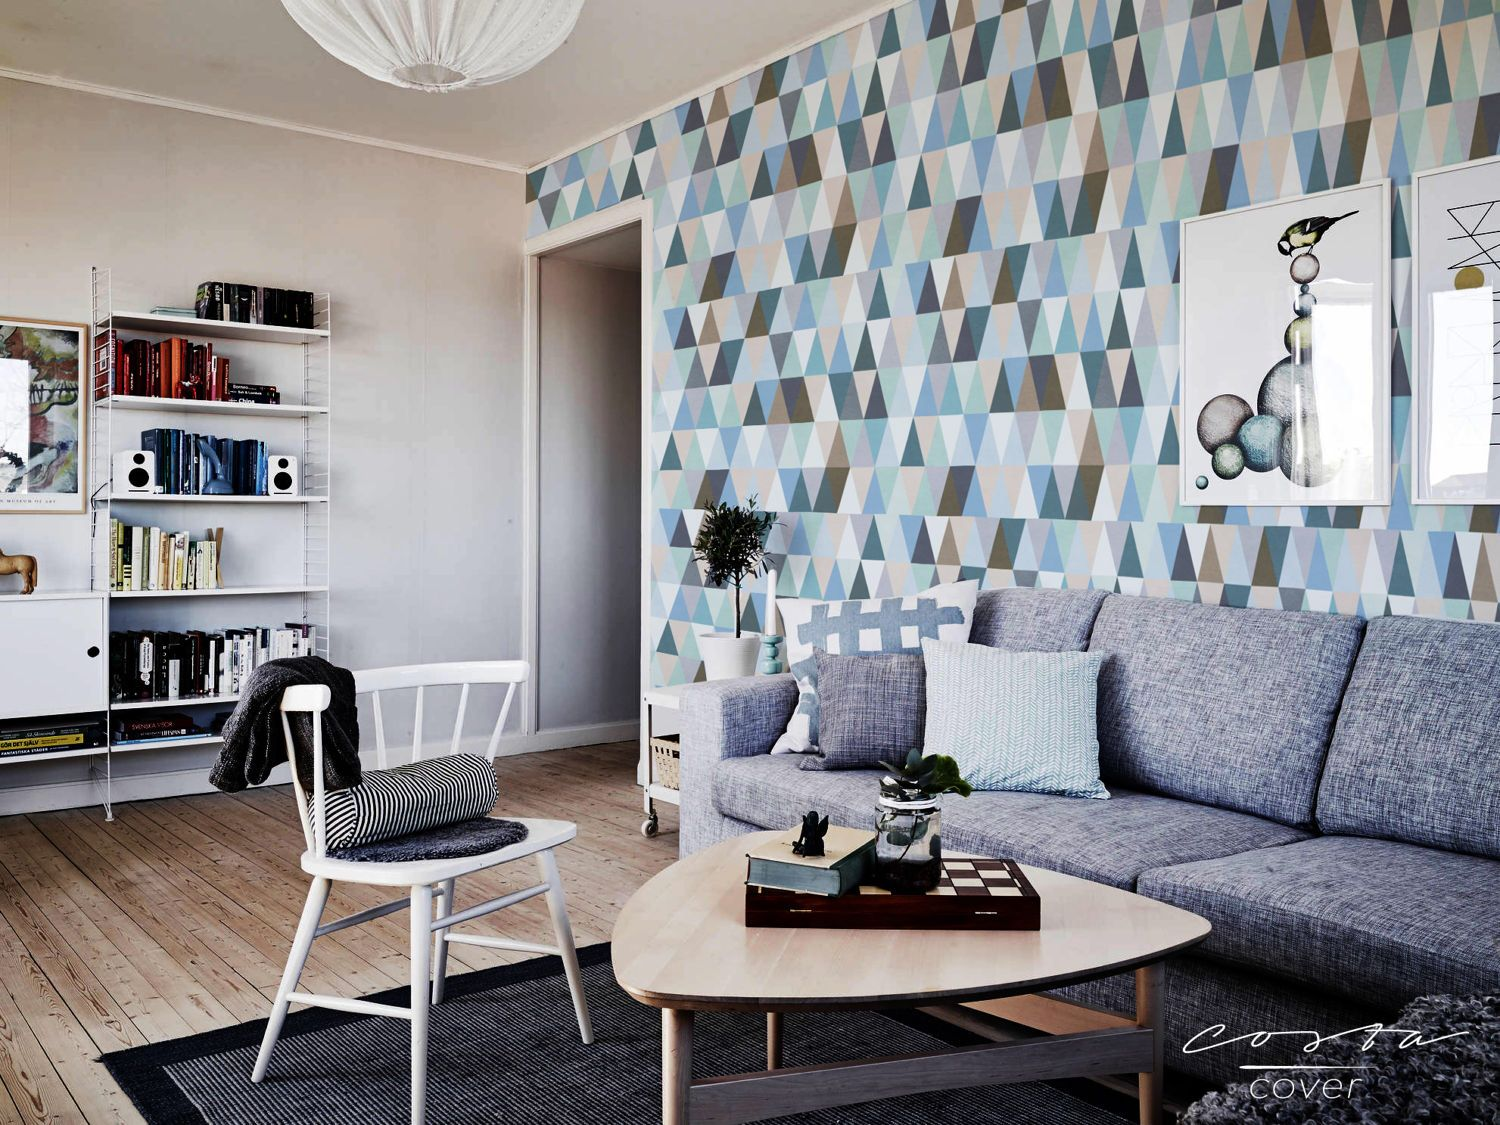 Wallpaper removable for apartment wall hanging Blue